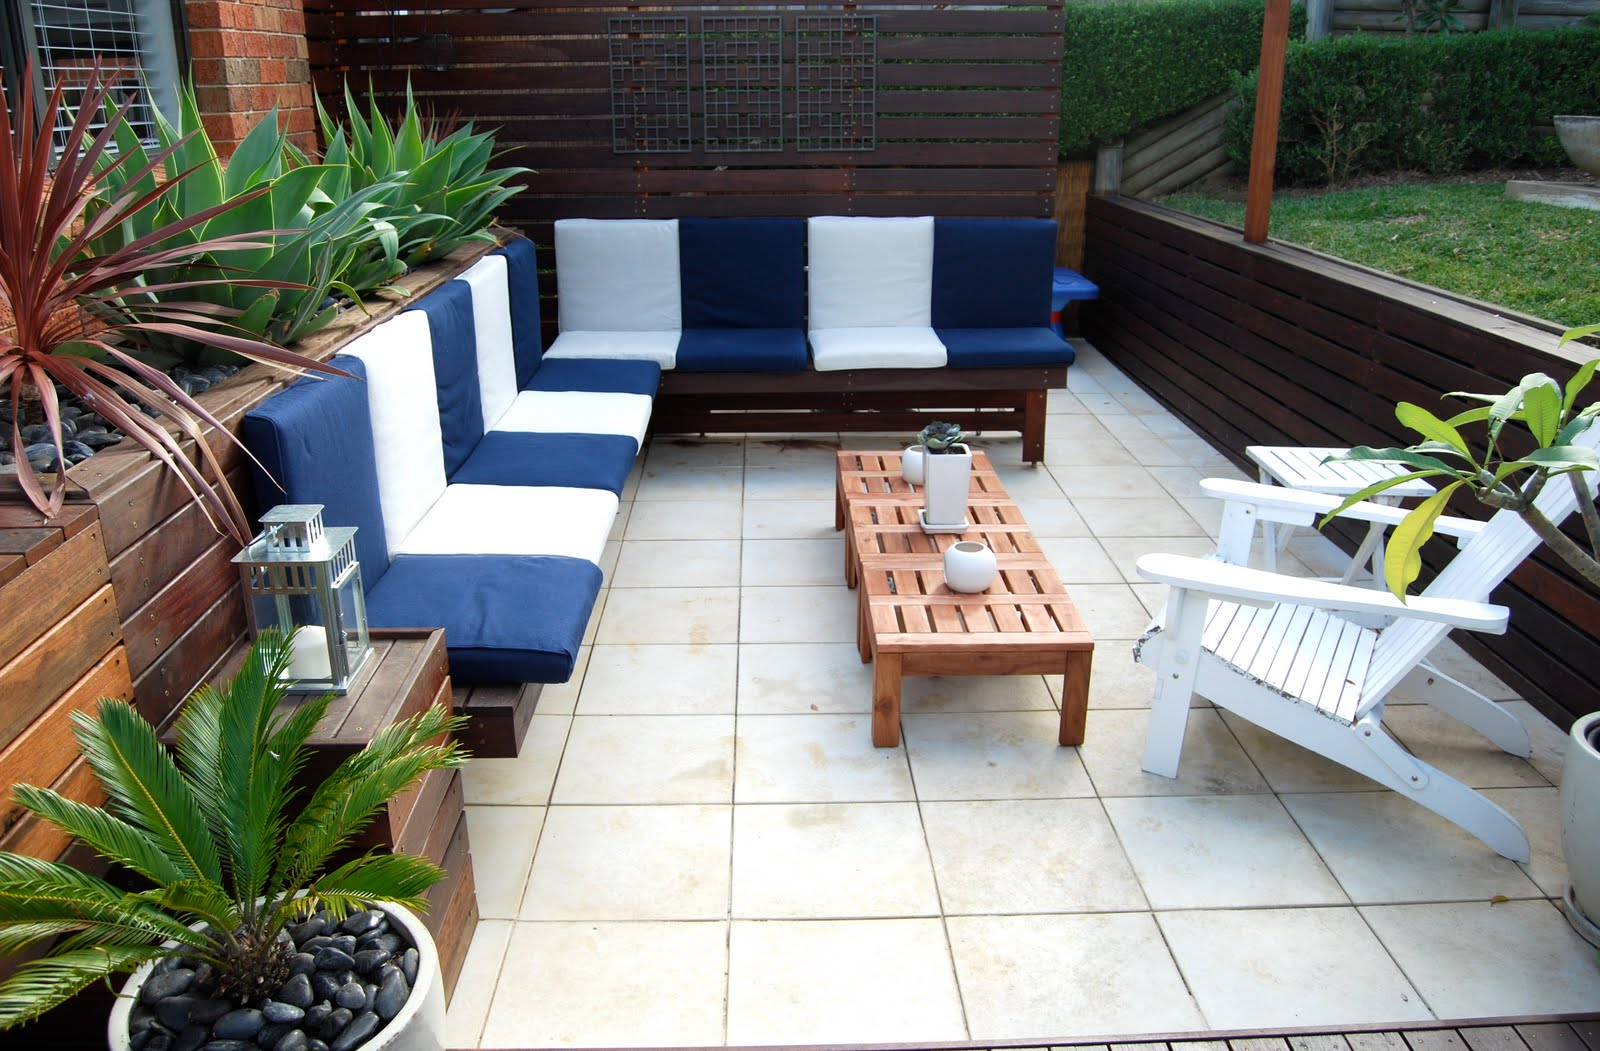 Ikea Lawn Furniture Way To Color Outdoor Living Space With  # Muebles Jardin Ikea